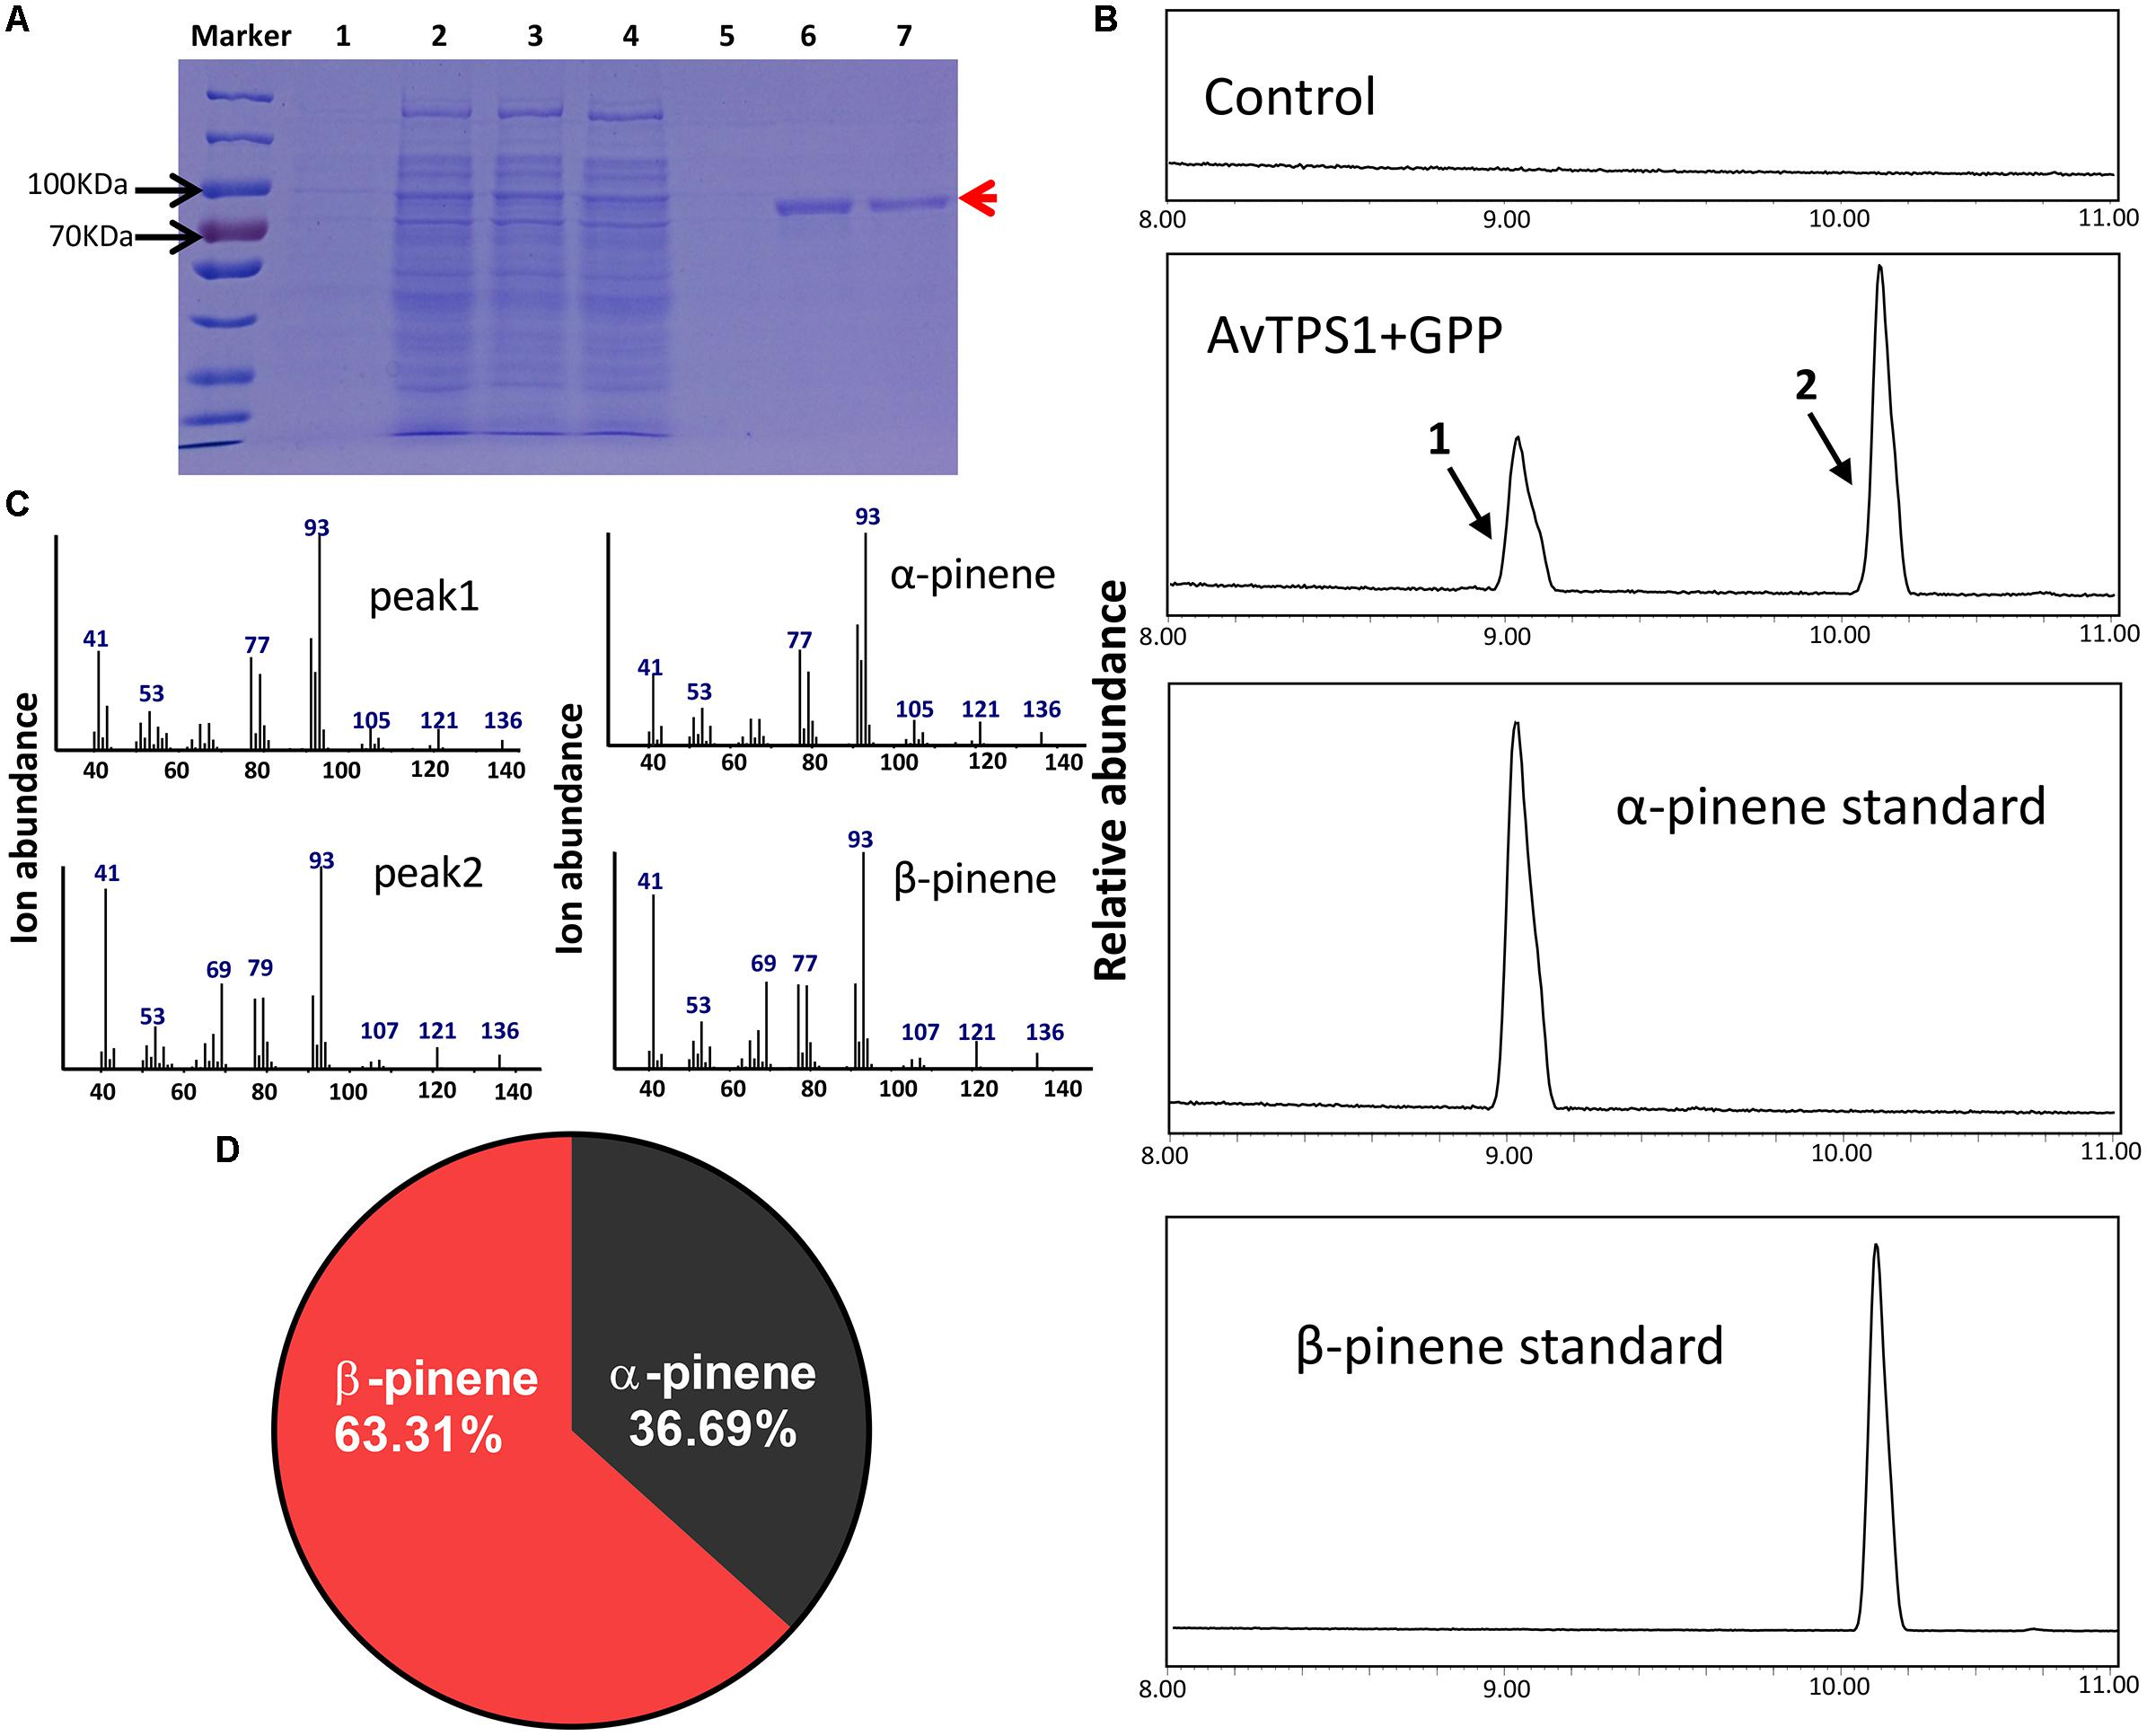 Frontiers | An Integrative Volatile Terpenoid Profiling and